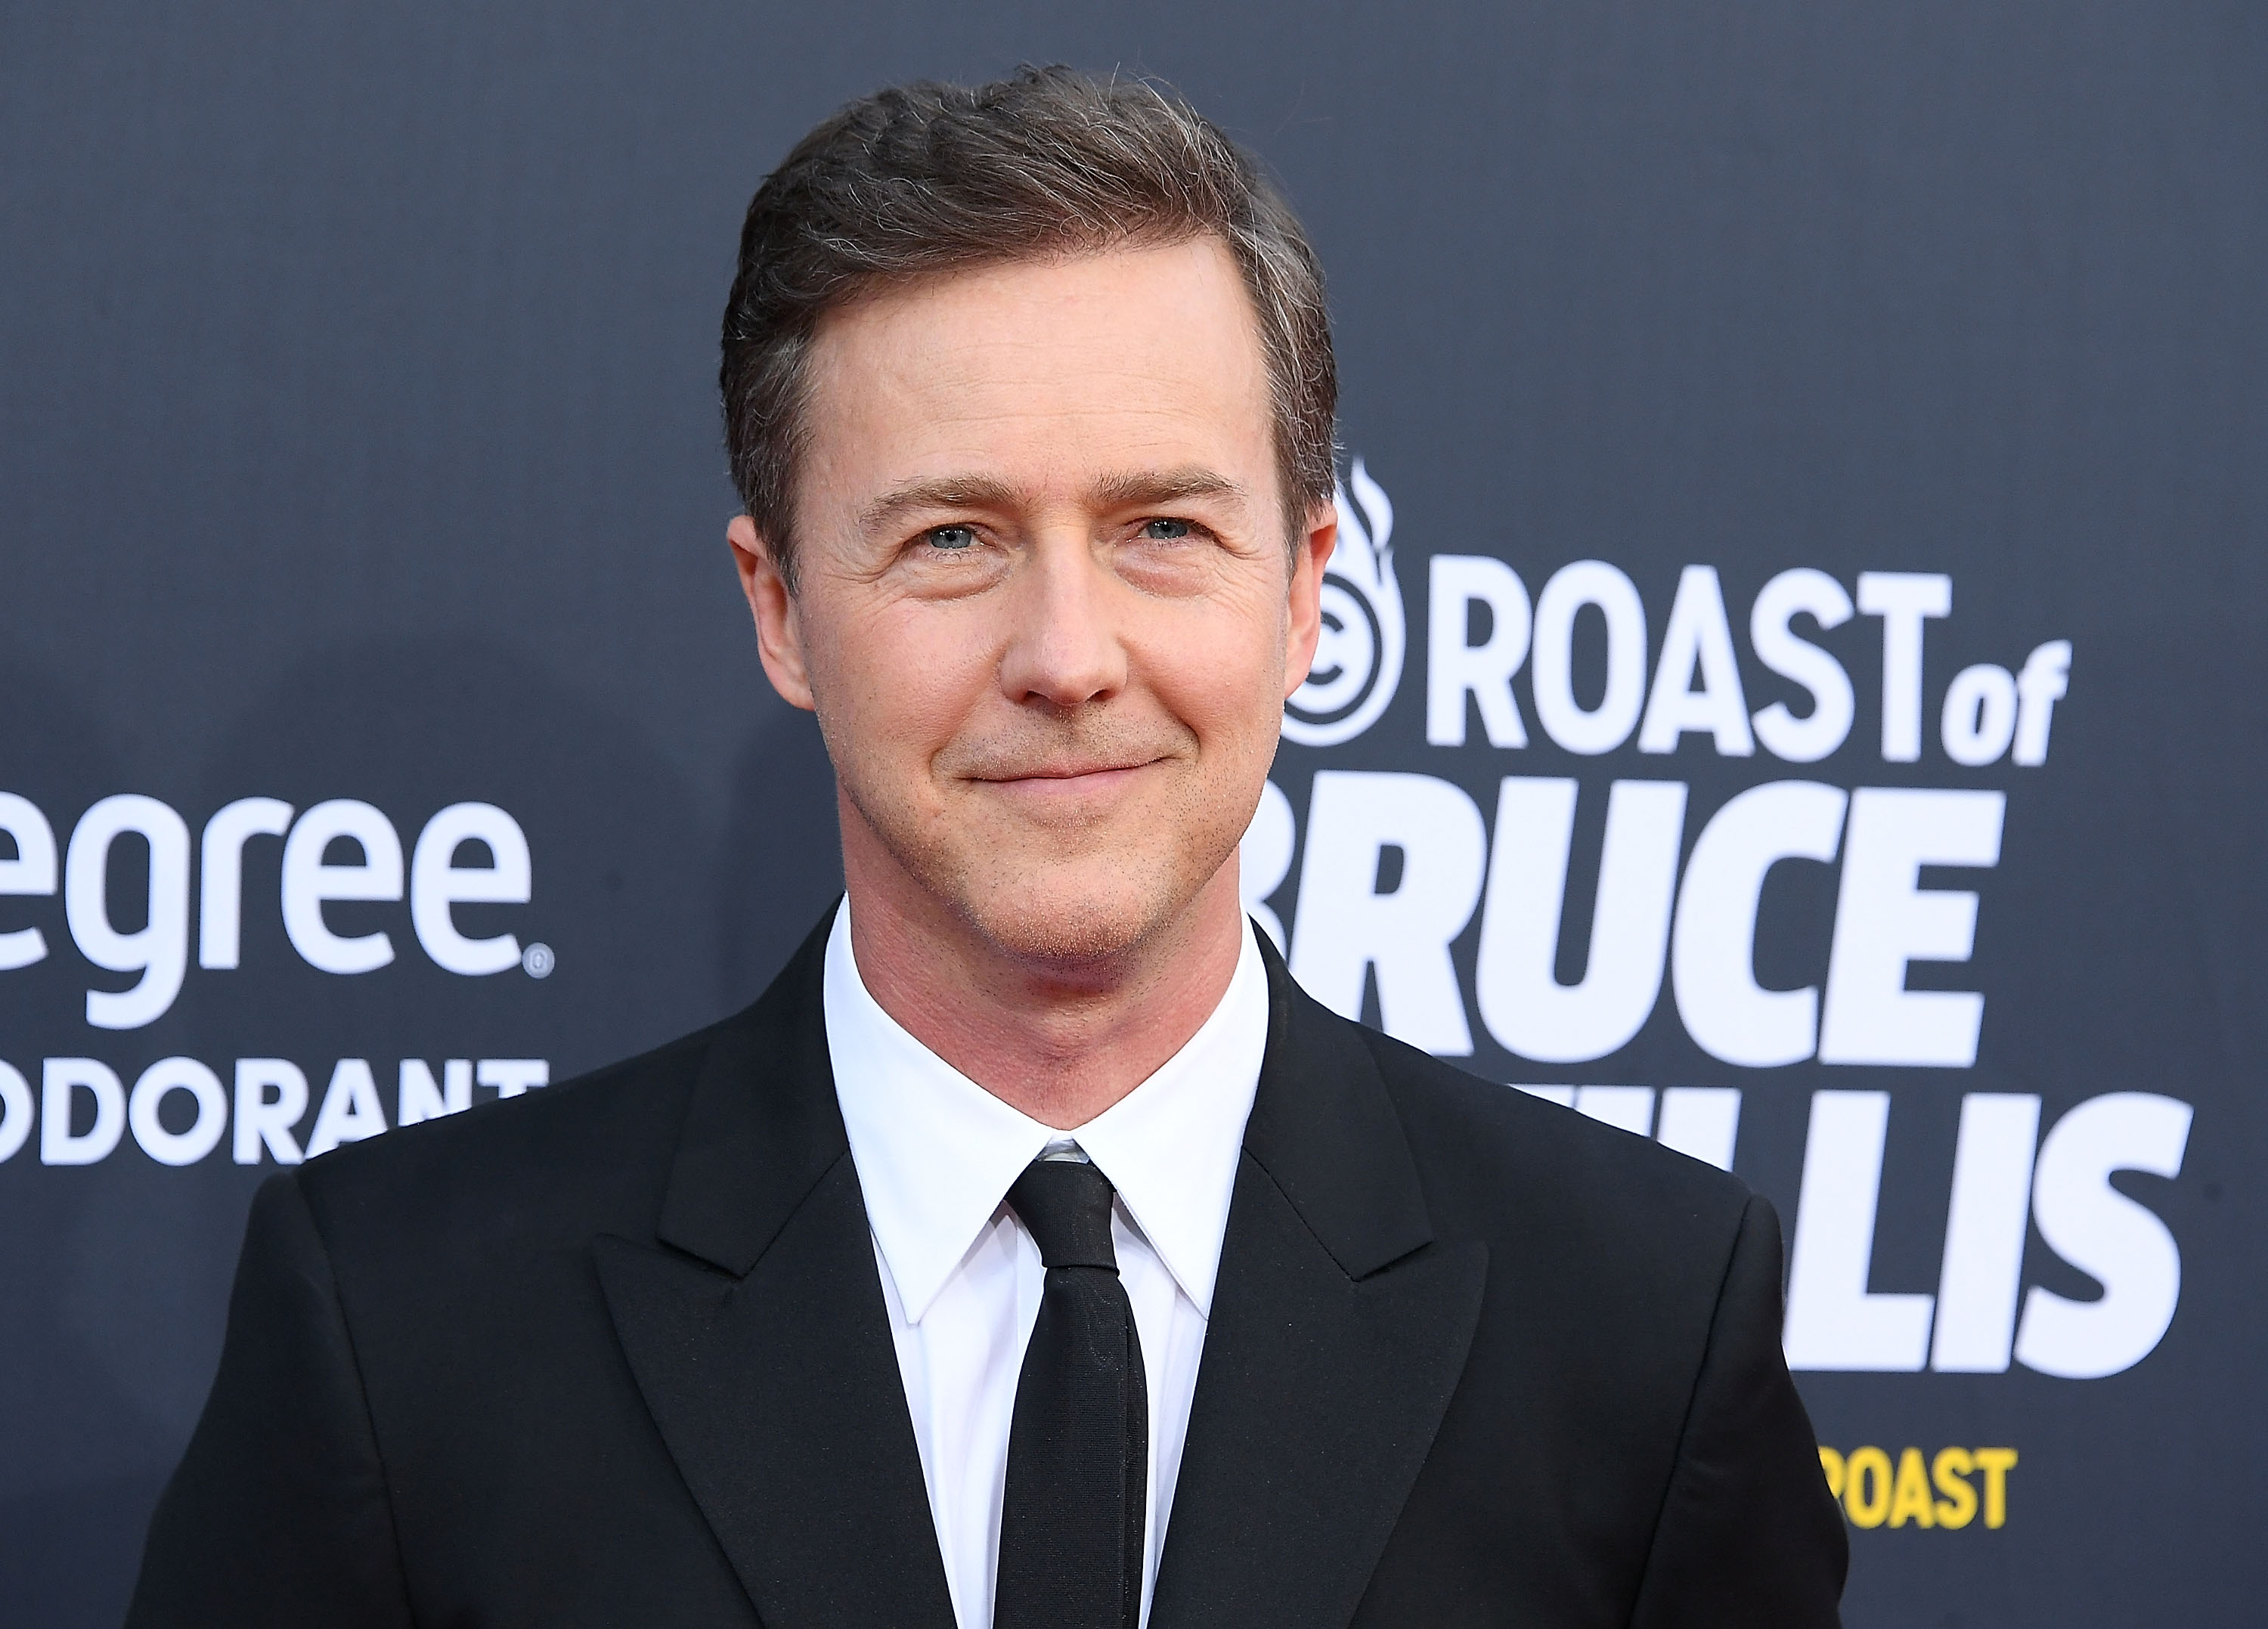 Edward Norton at the Comedy Central Roast Of Bruce Willis on July 14, 2018 in Los Angeles, California.